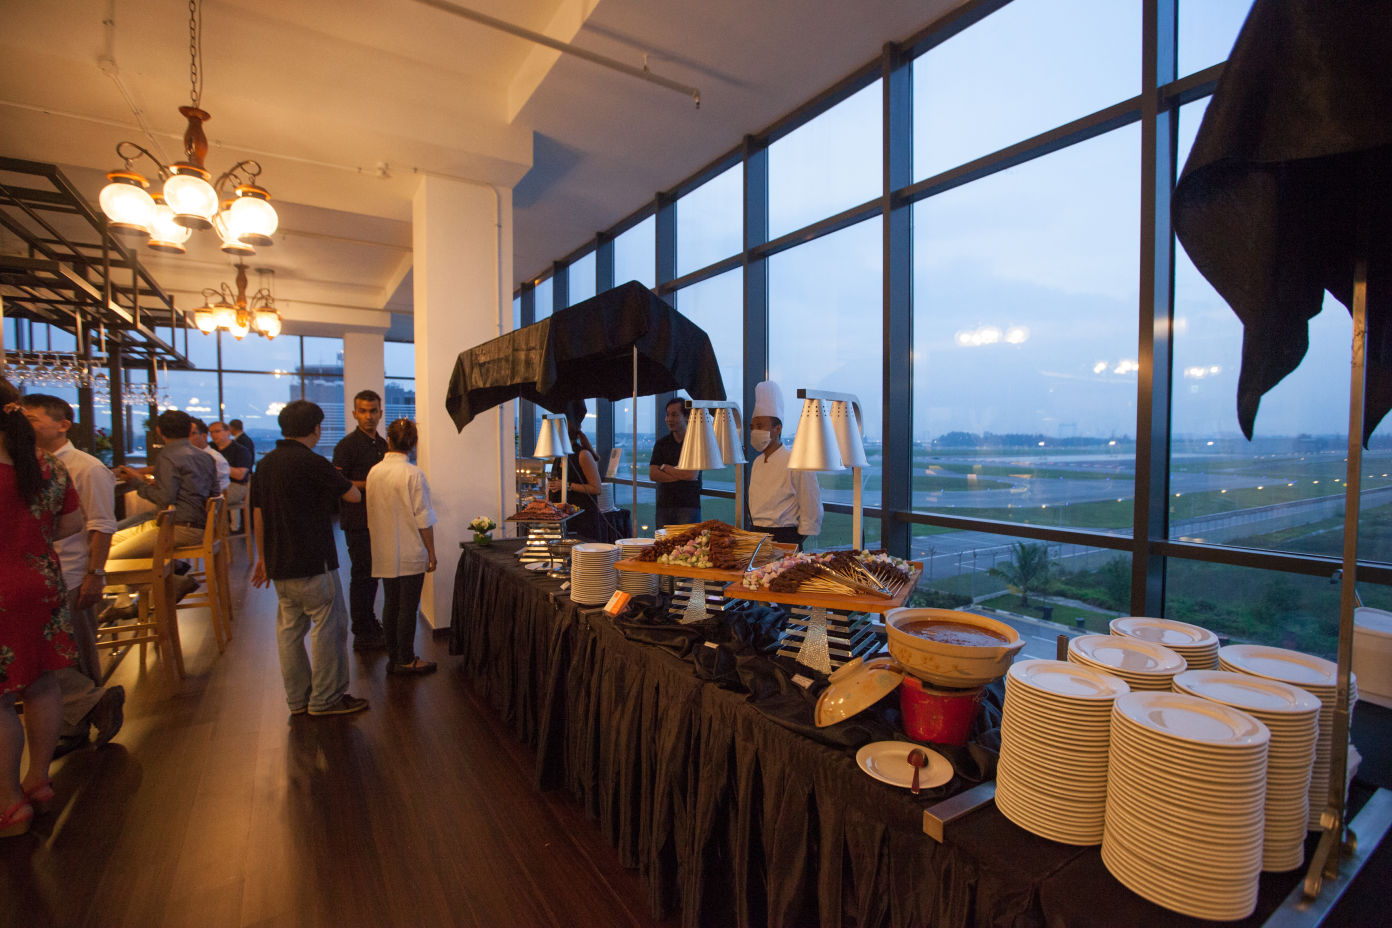 manna-pot-catering_wings-over-asia-corporate-function_41.jpg